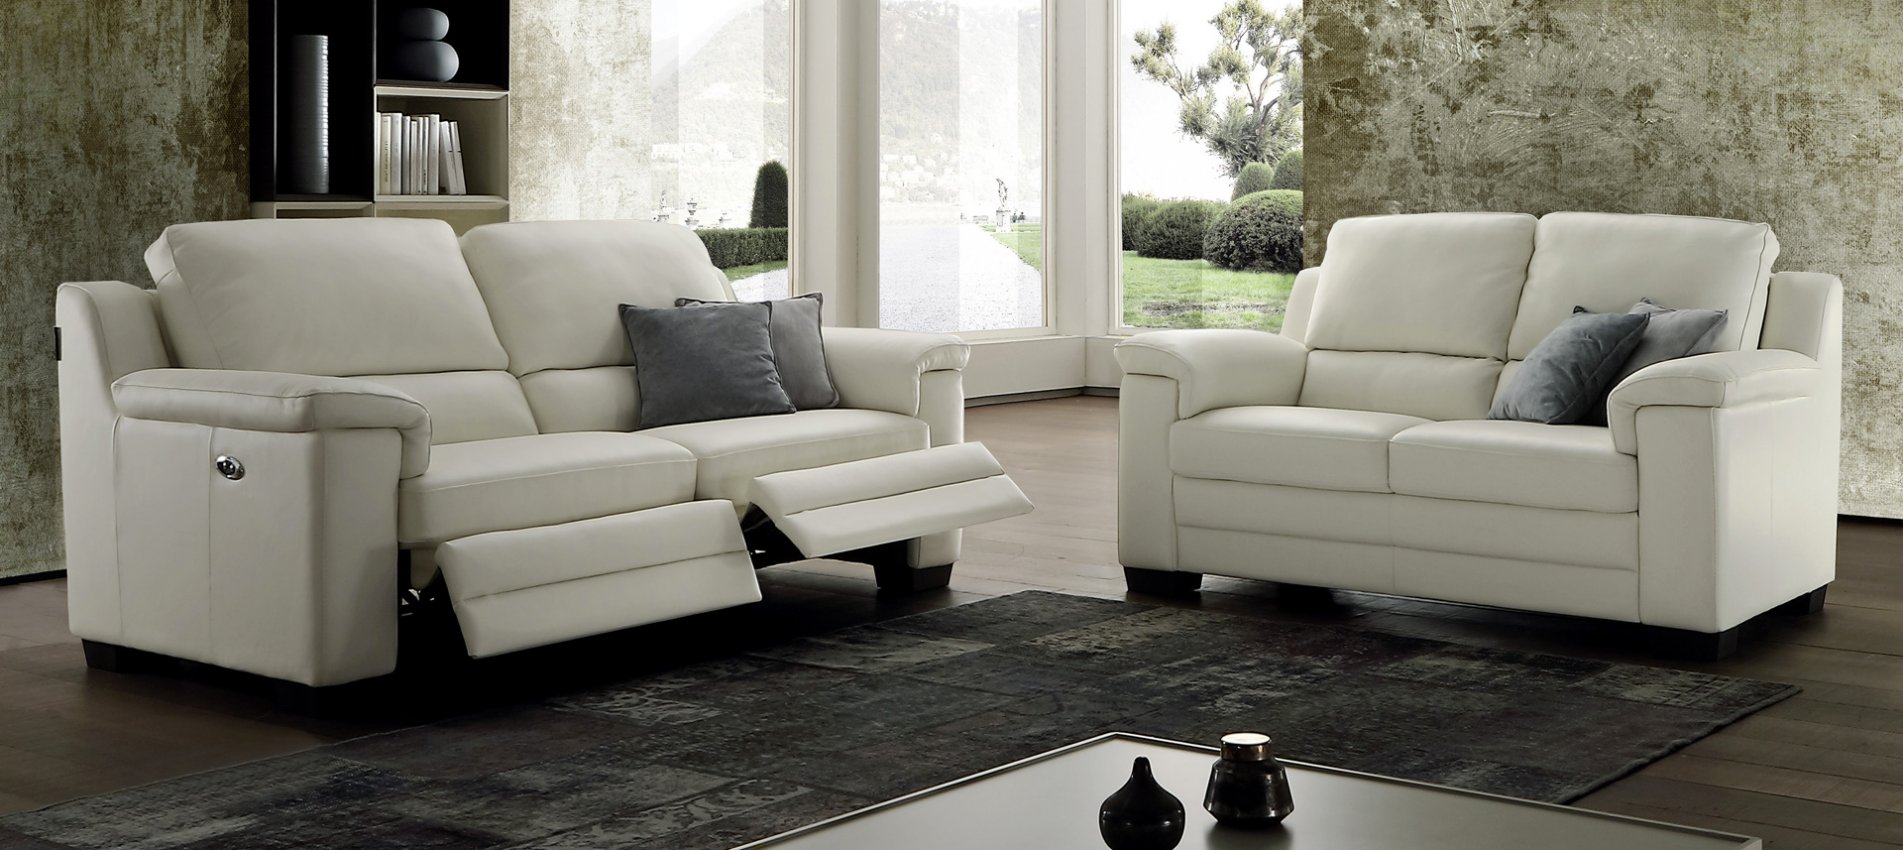 canap 233 cuir canap 233 lit fauteuil relax chambres lit